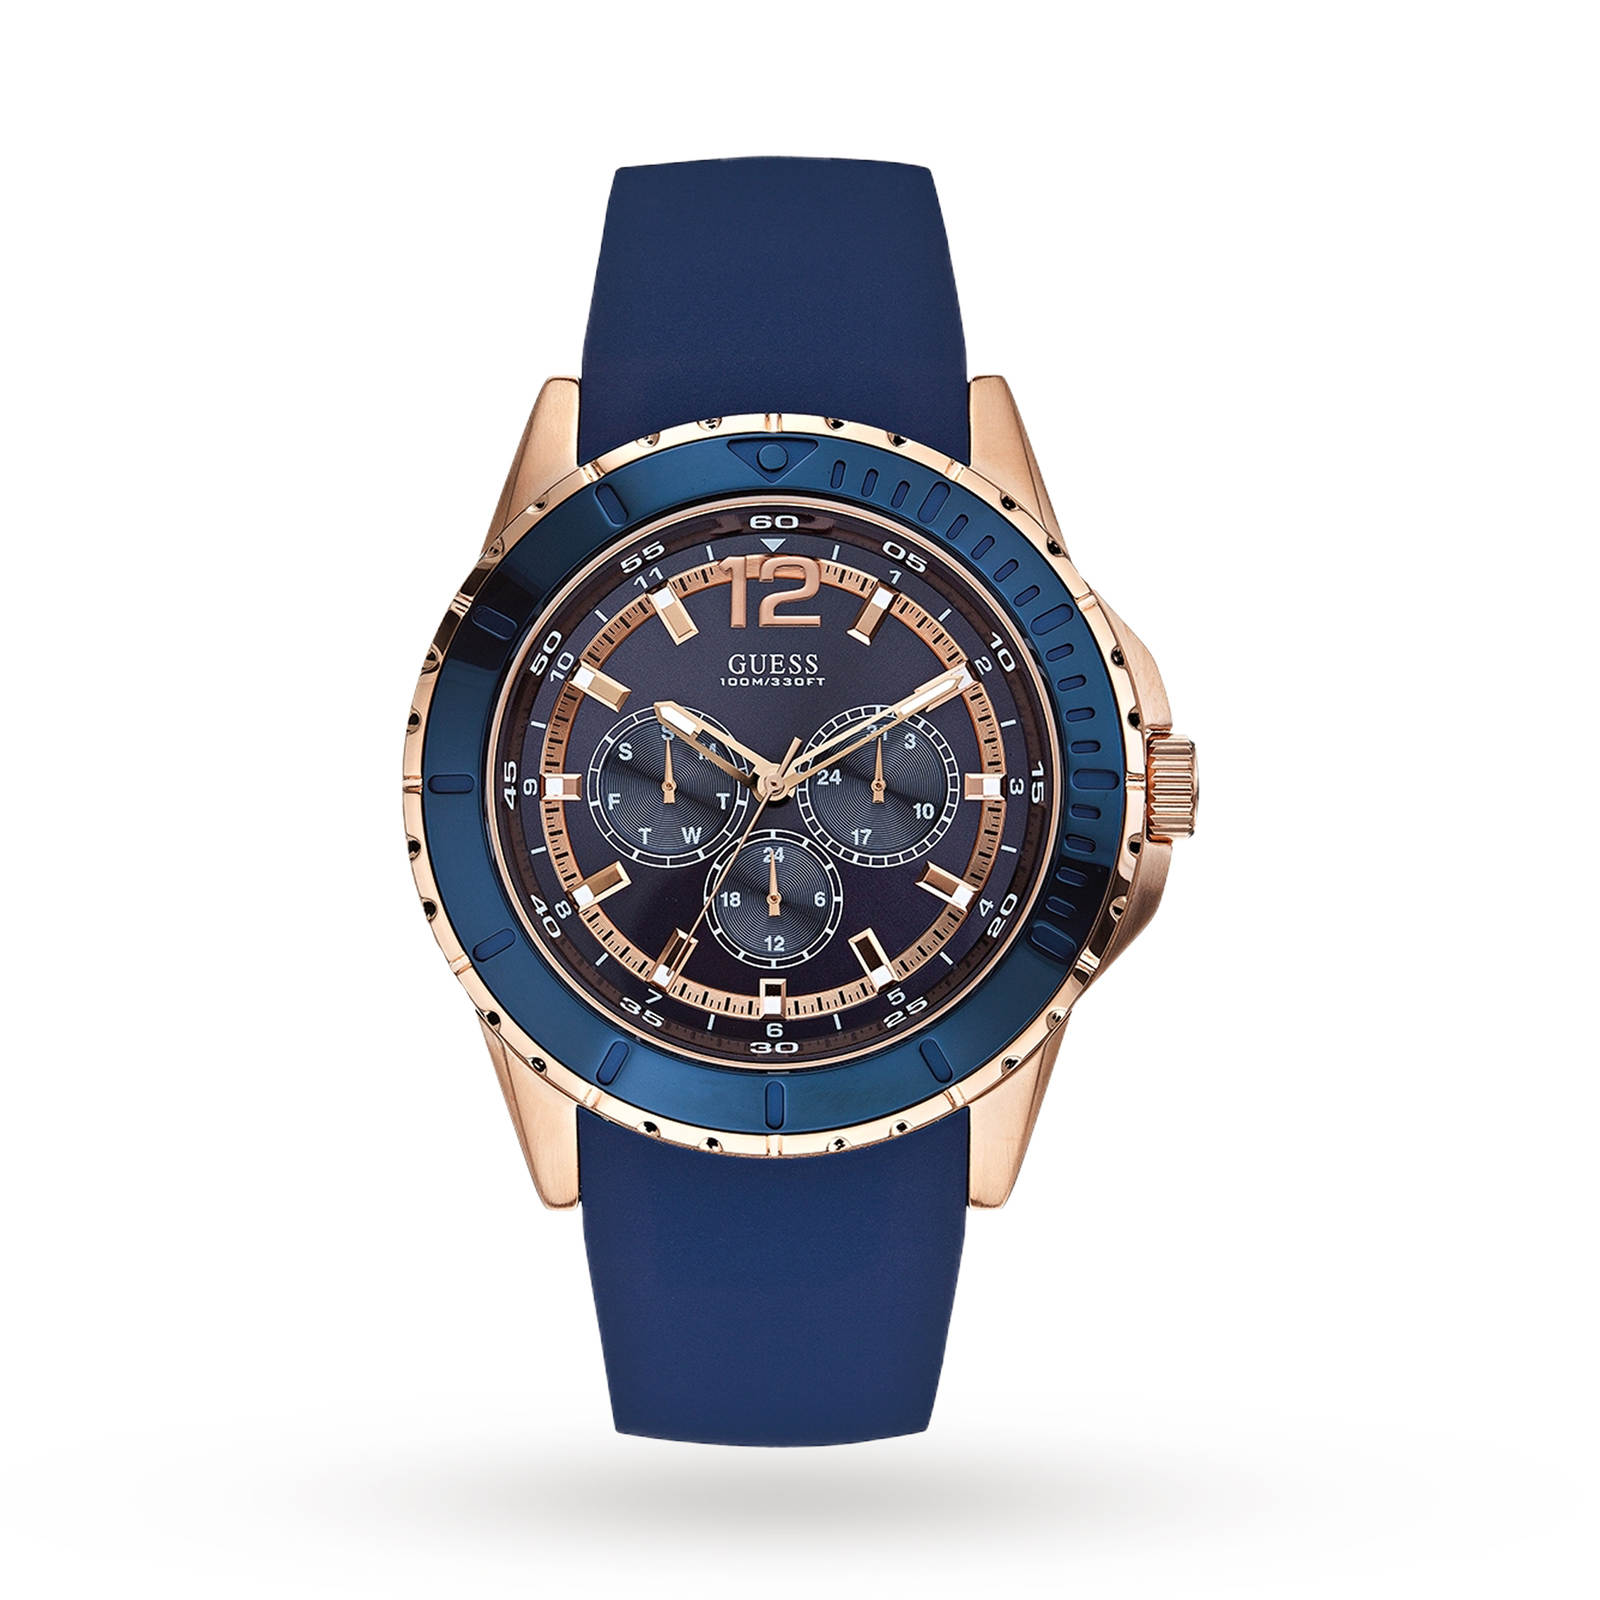 Guess Men's Maverick Watch